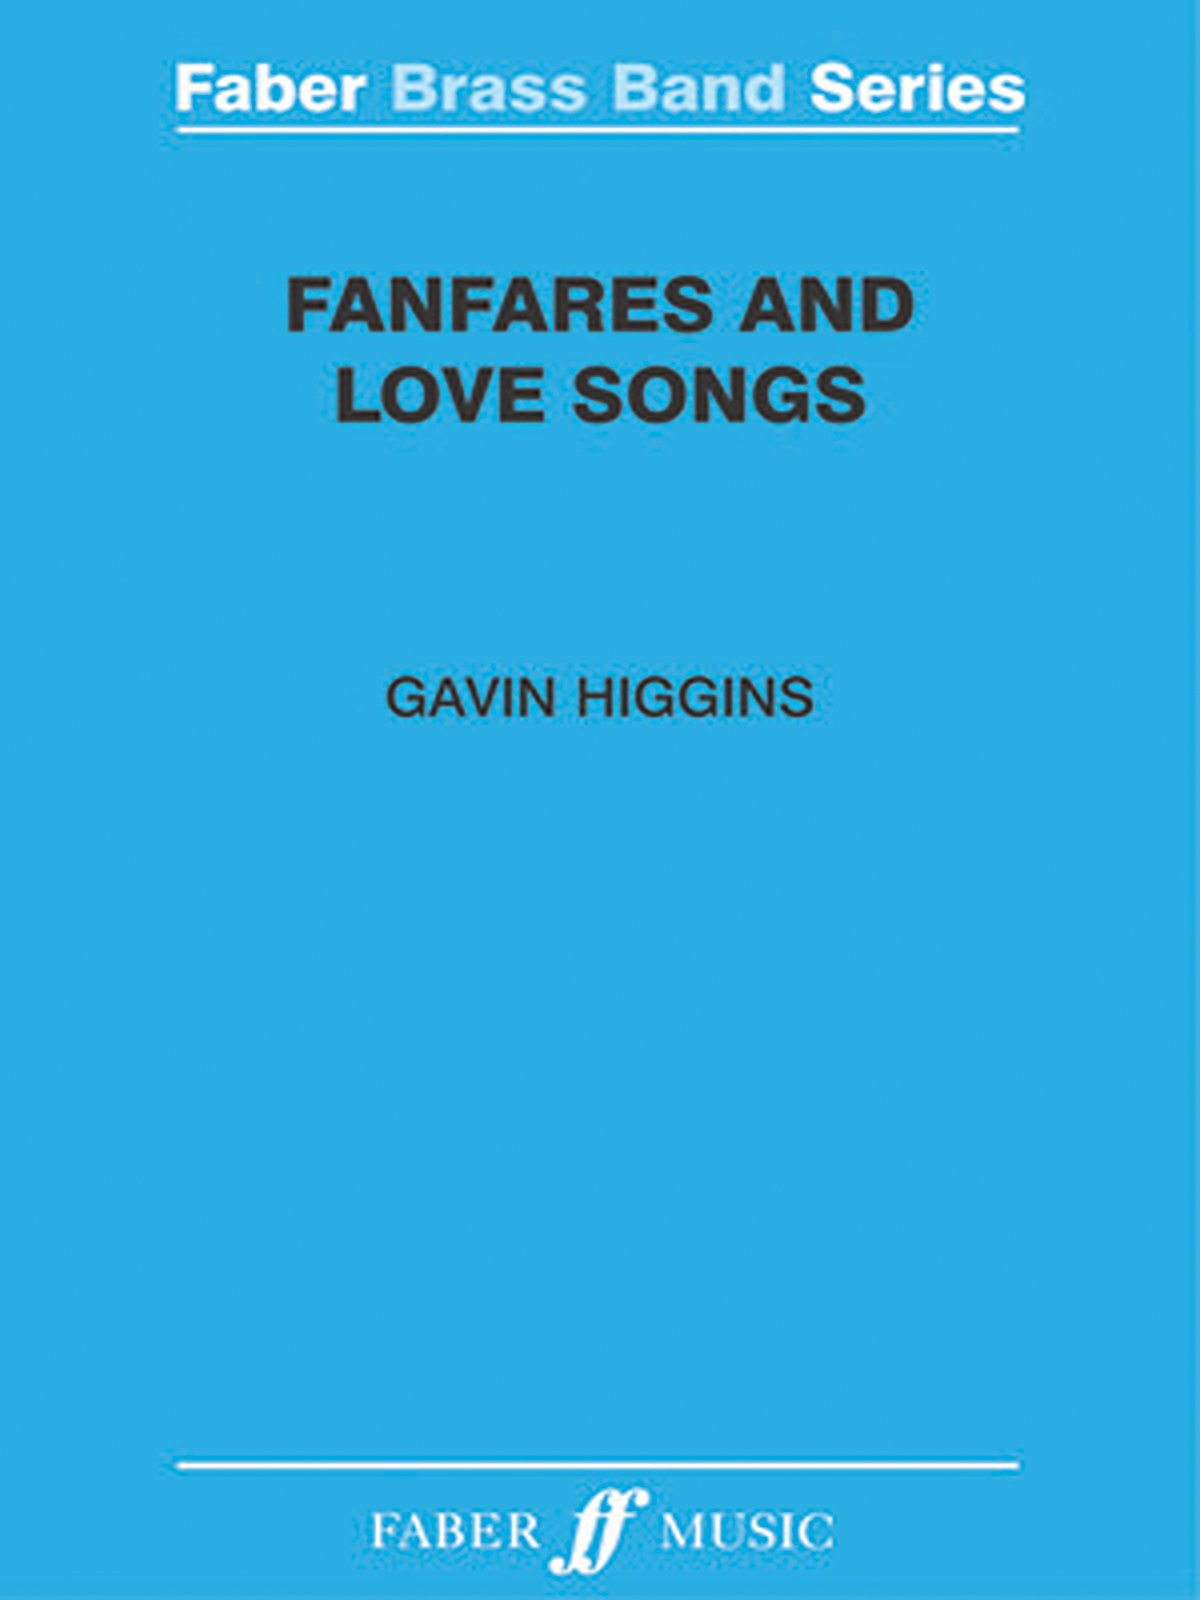 Fanfares and Love Songs: Score & Parts (Faber Edition: Faber Brass Band Series) ebook